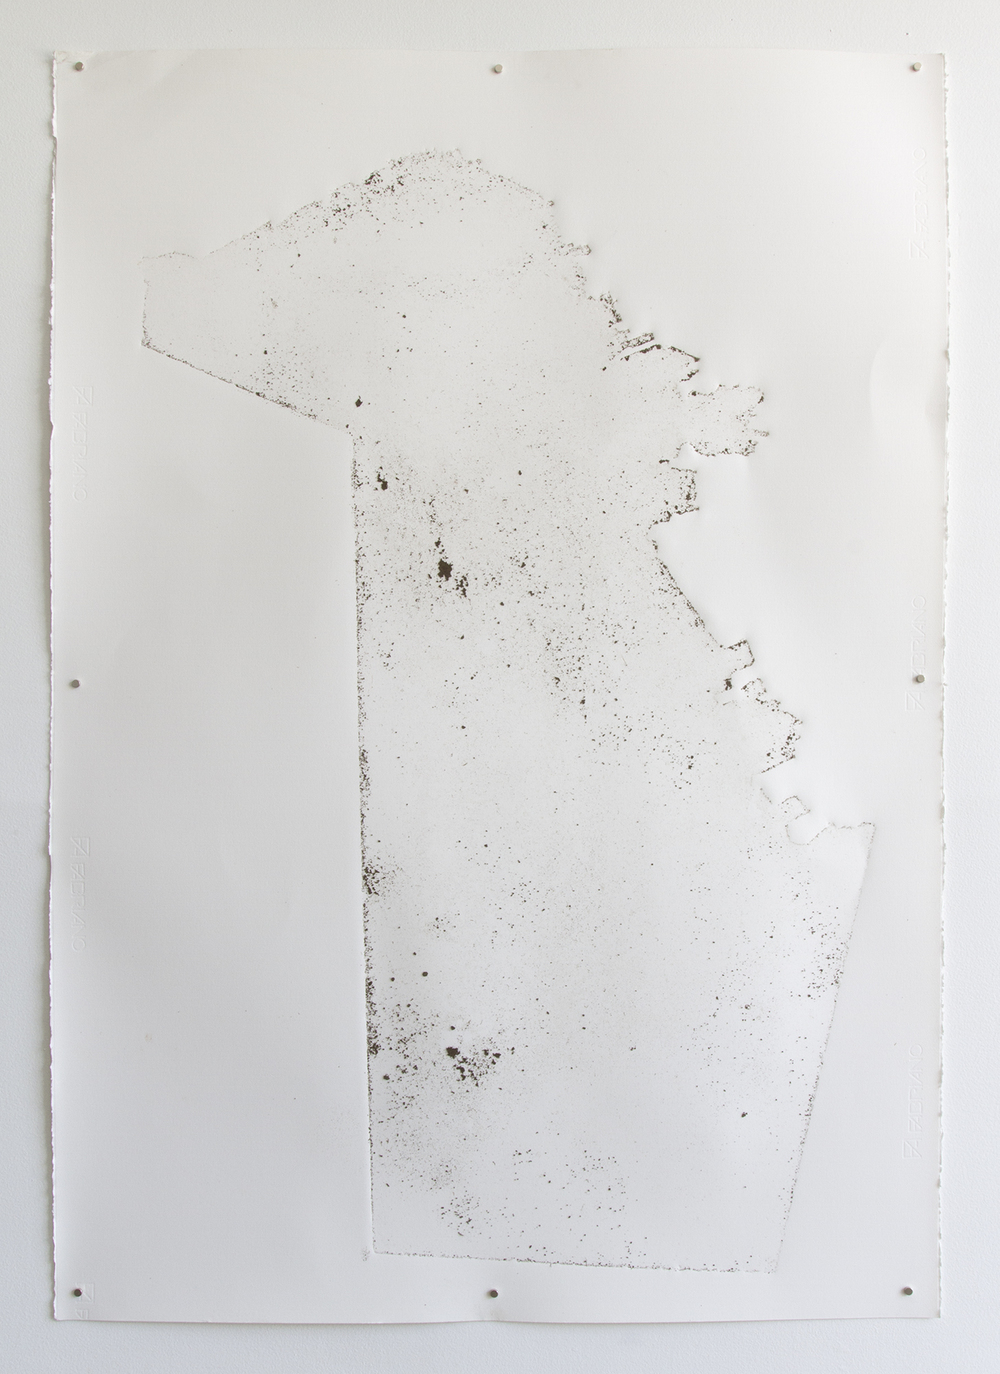 Dirt Drawing Three, 2014, site-specific dirt on Fabriano paper, 28in x 39in